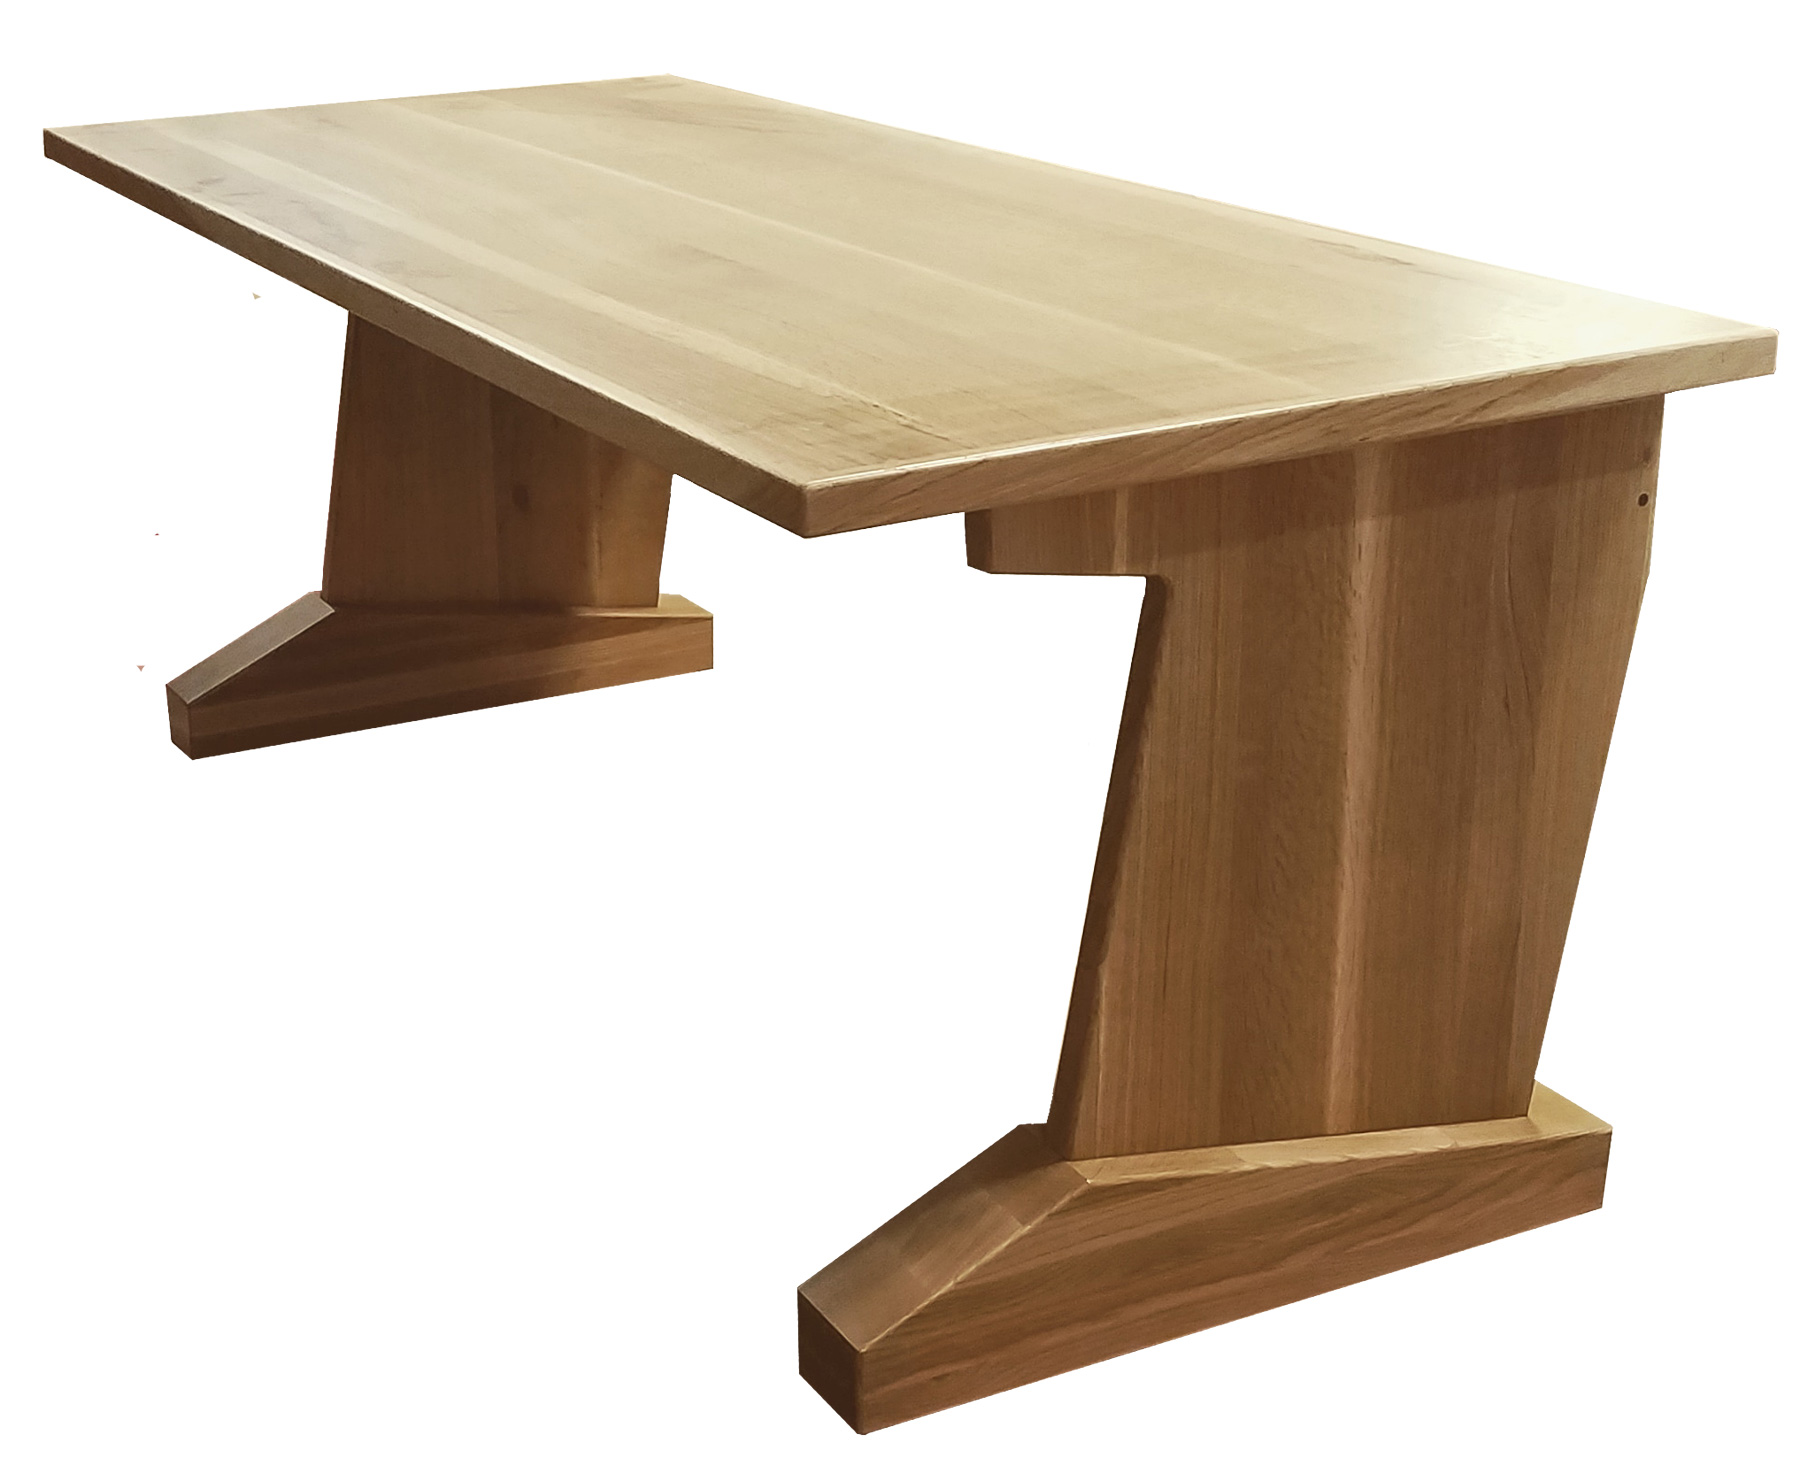 Admirable Audiorax Desk Design D 30 Deep X 72 Wide Solid Wood Desk Top Solid Wood Desk Legs Solid White Oak With Clear Lacquer Download Free Architecture Designs Scobabritishbridgeorg